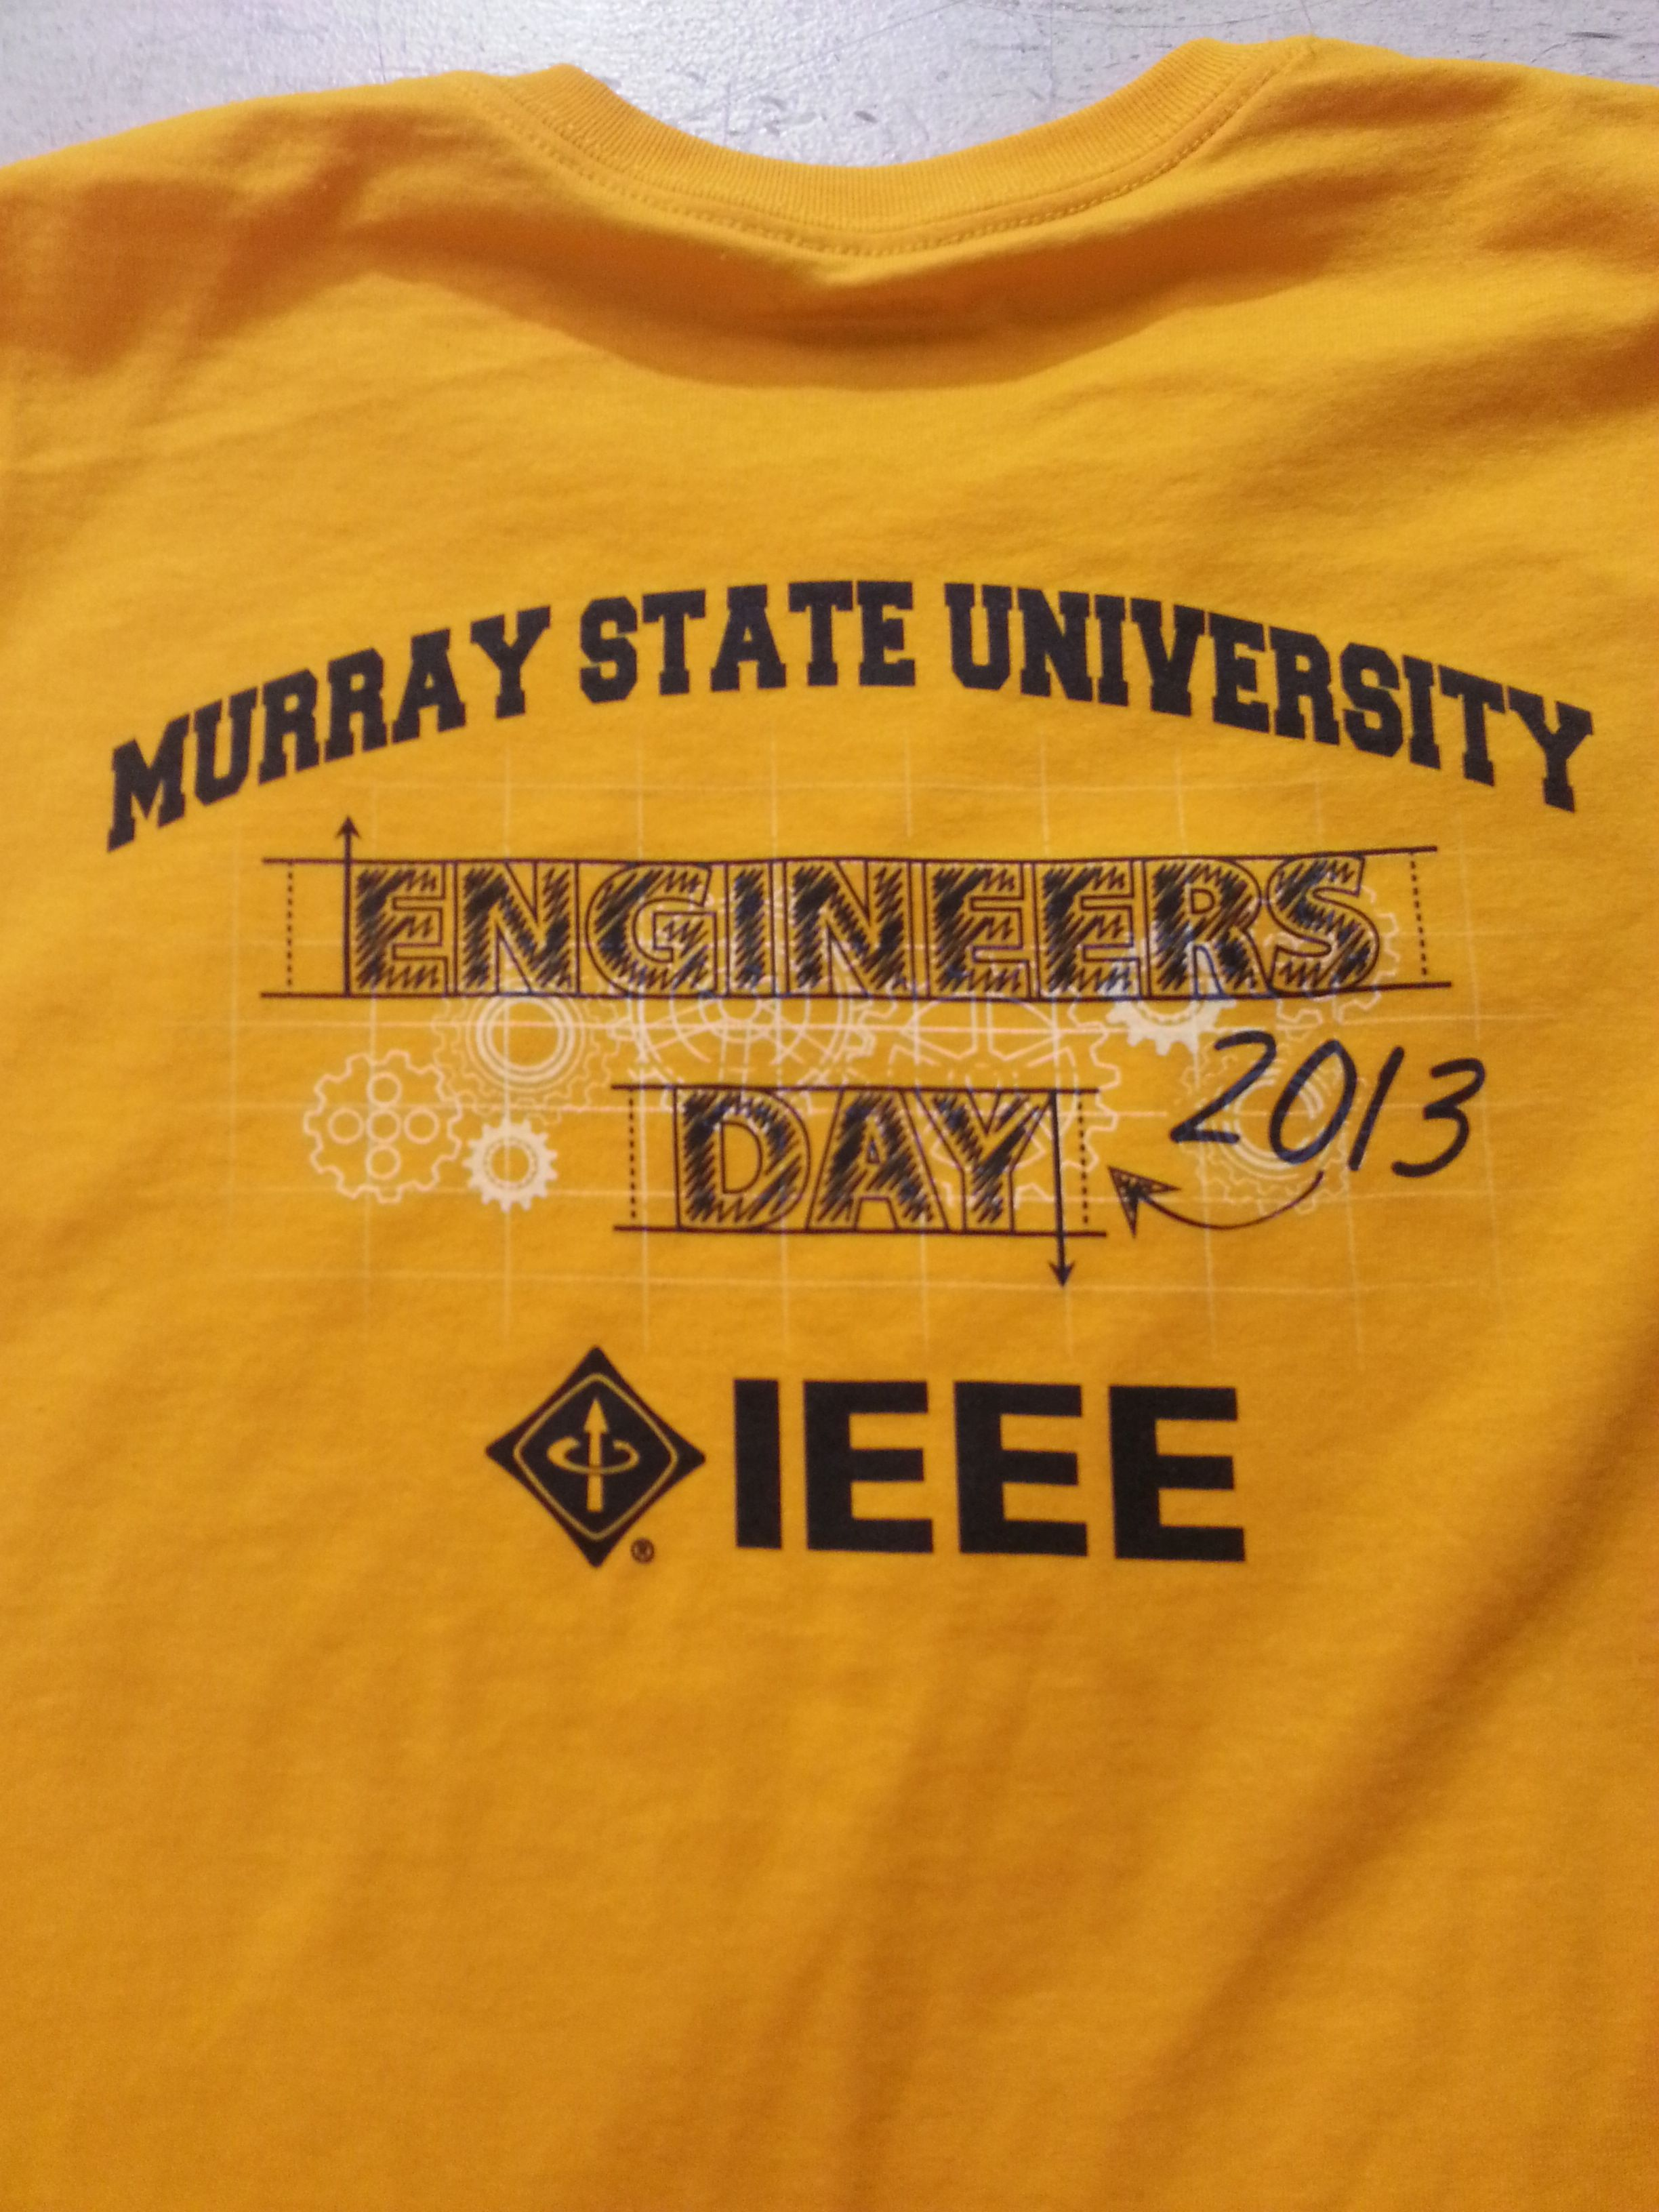 Hultman Screen Printing http://www.hultman-inc.com/ Murray State Engineers Day